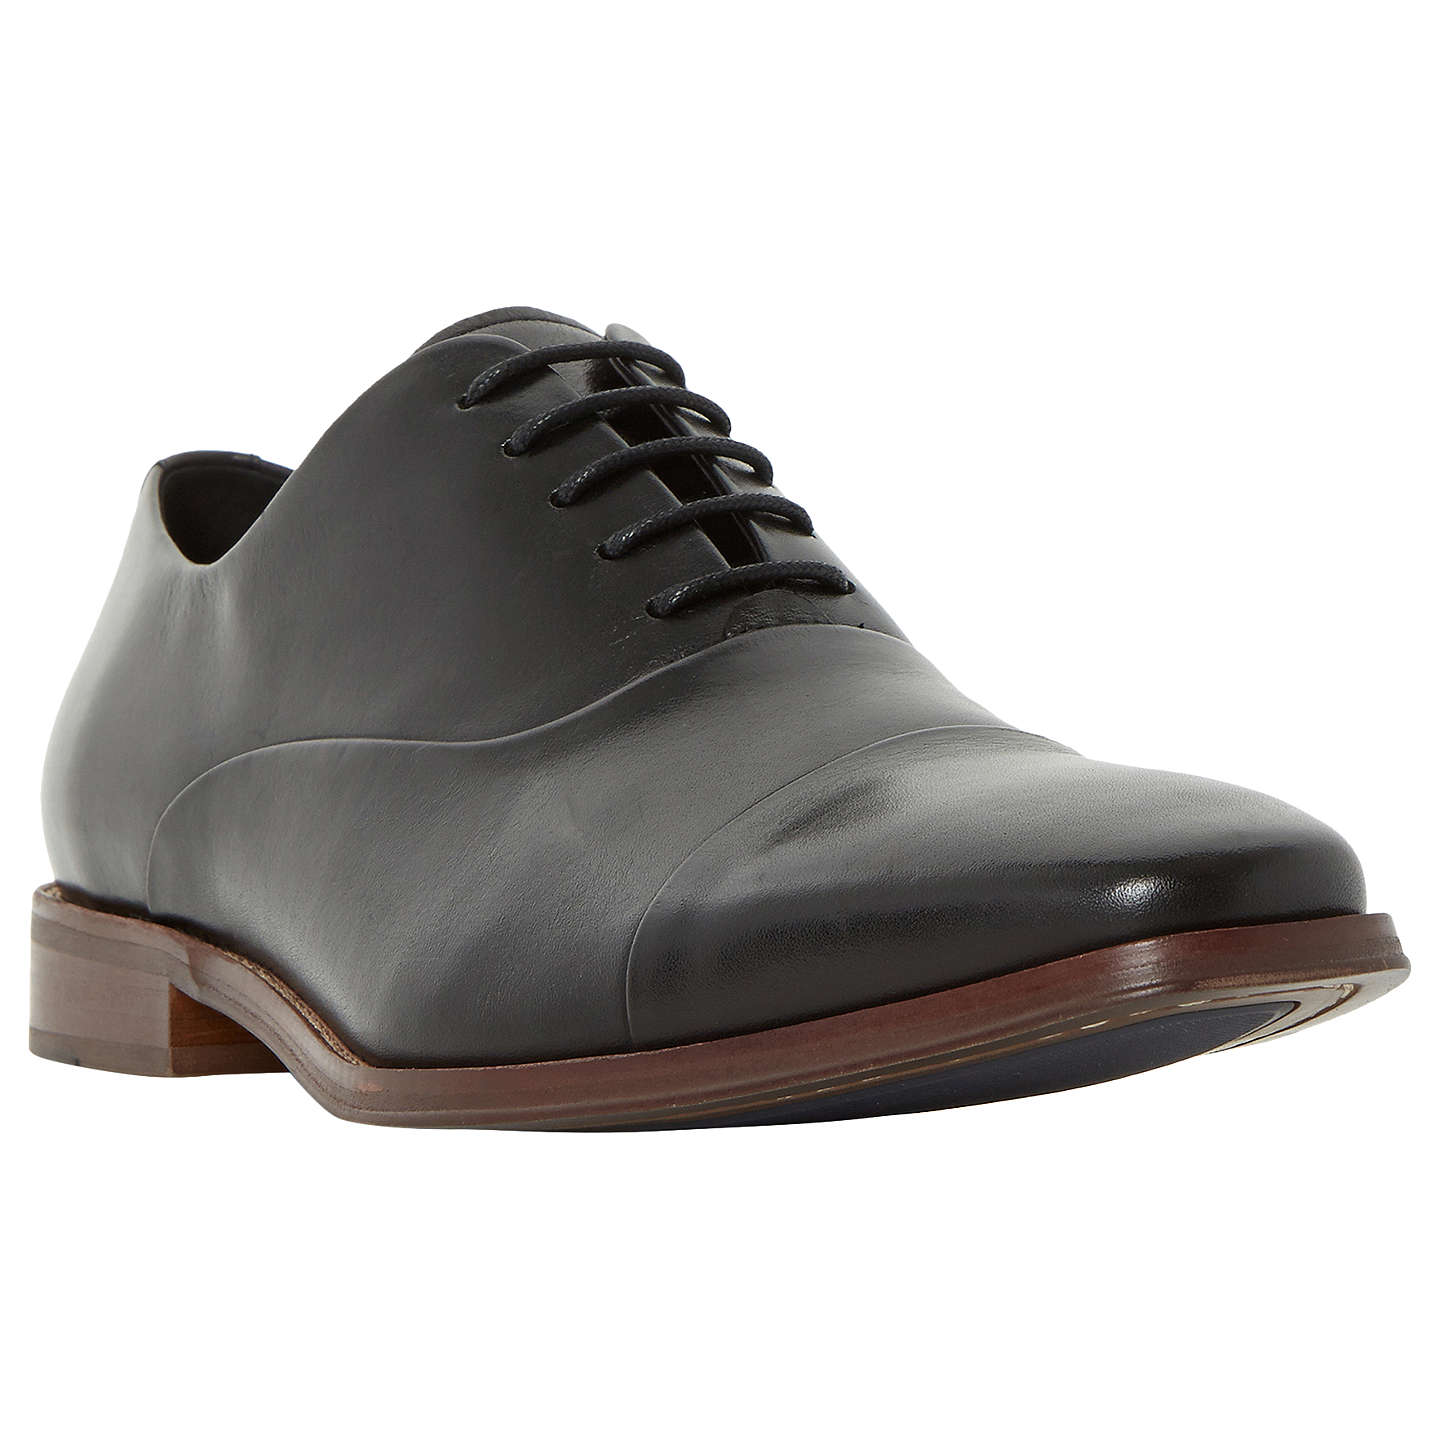 BuyDune Ravenswood Oxford Shoes, Black, 7 Online at johnlewis.com